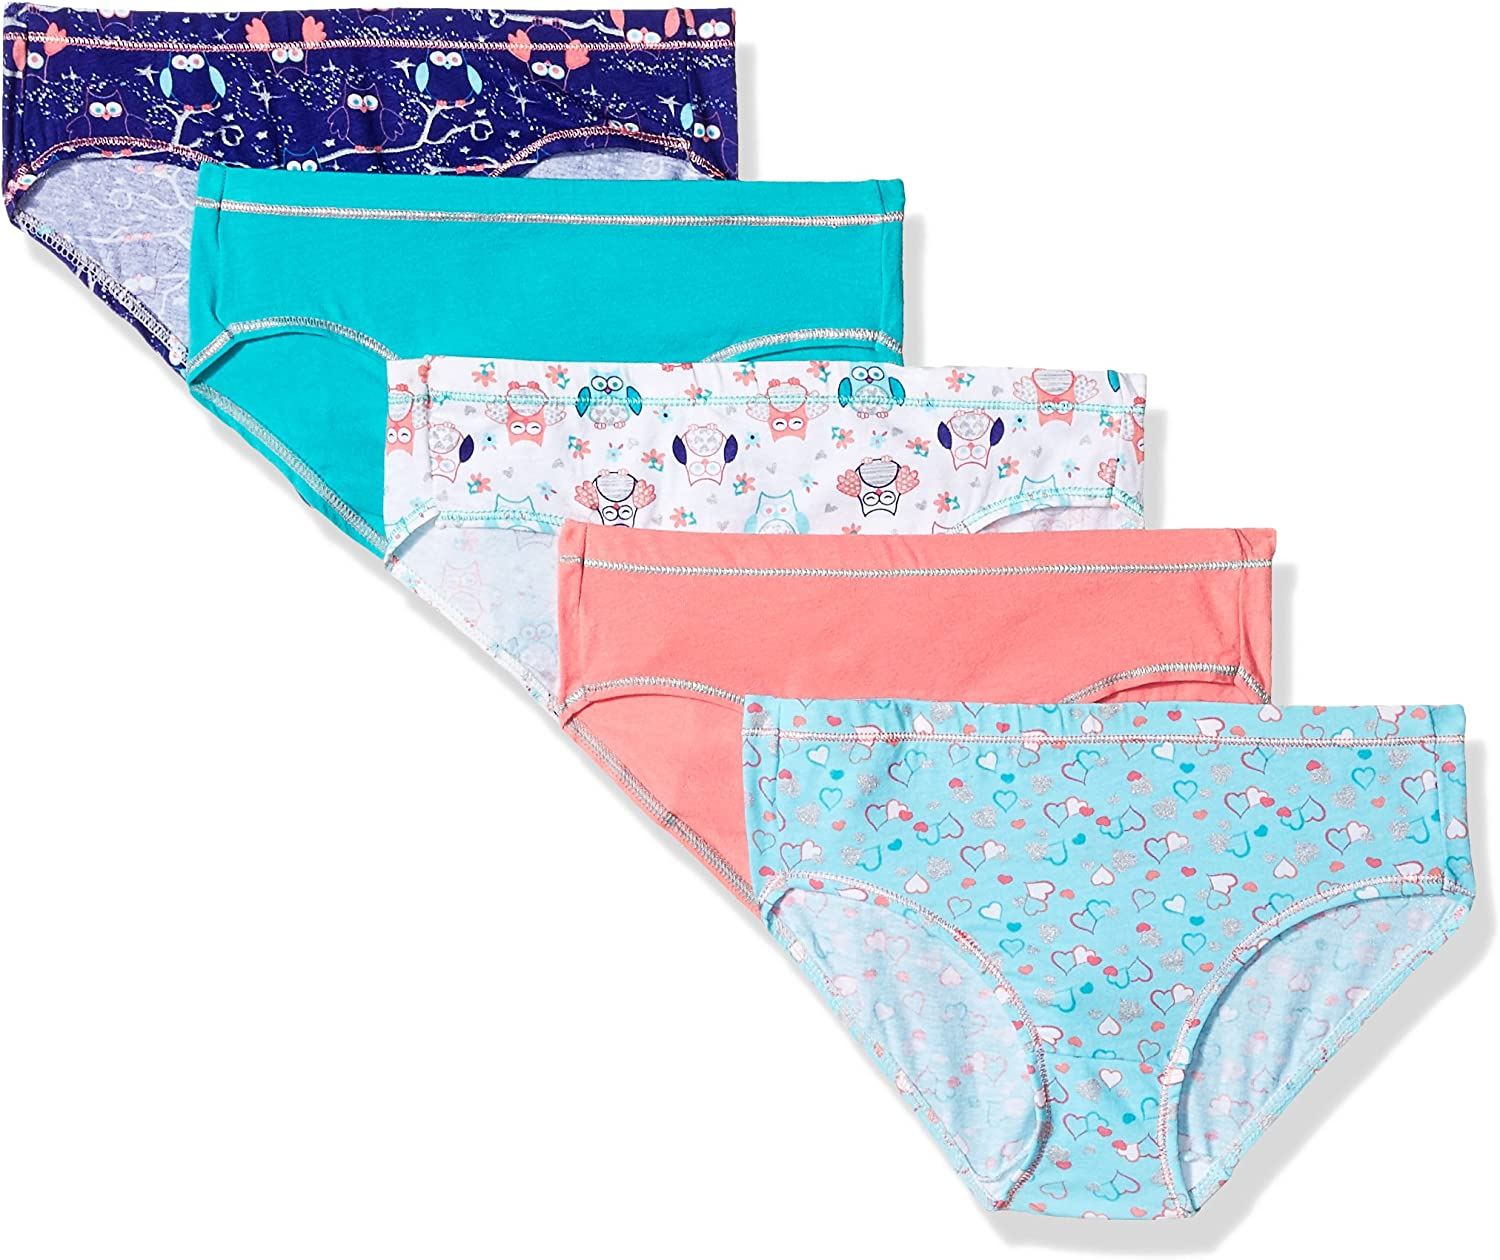 Hanes Girls Cotton Stretch Hipster 4 Pack